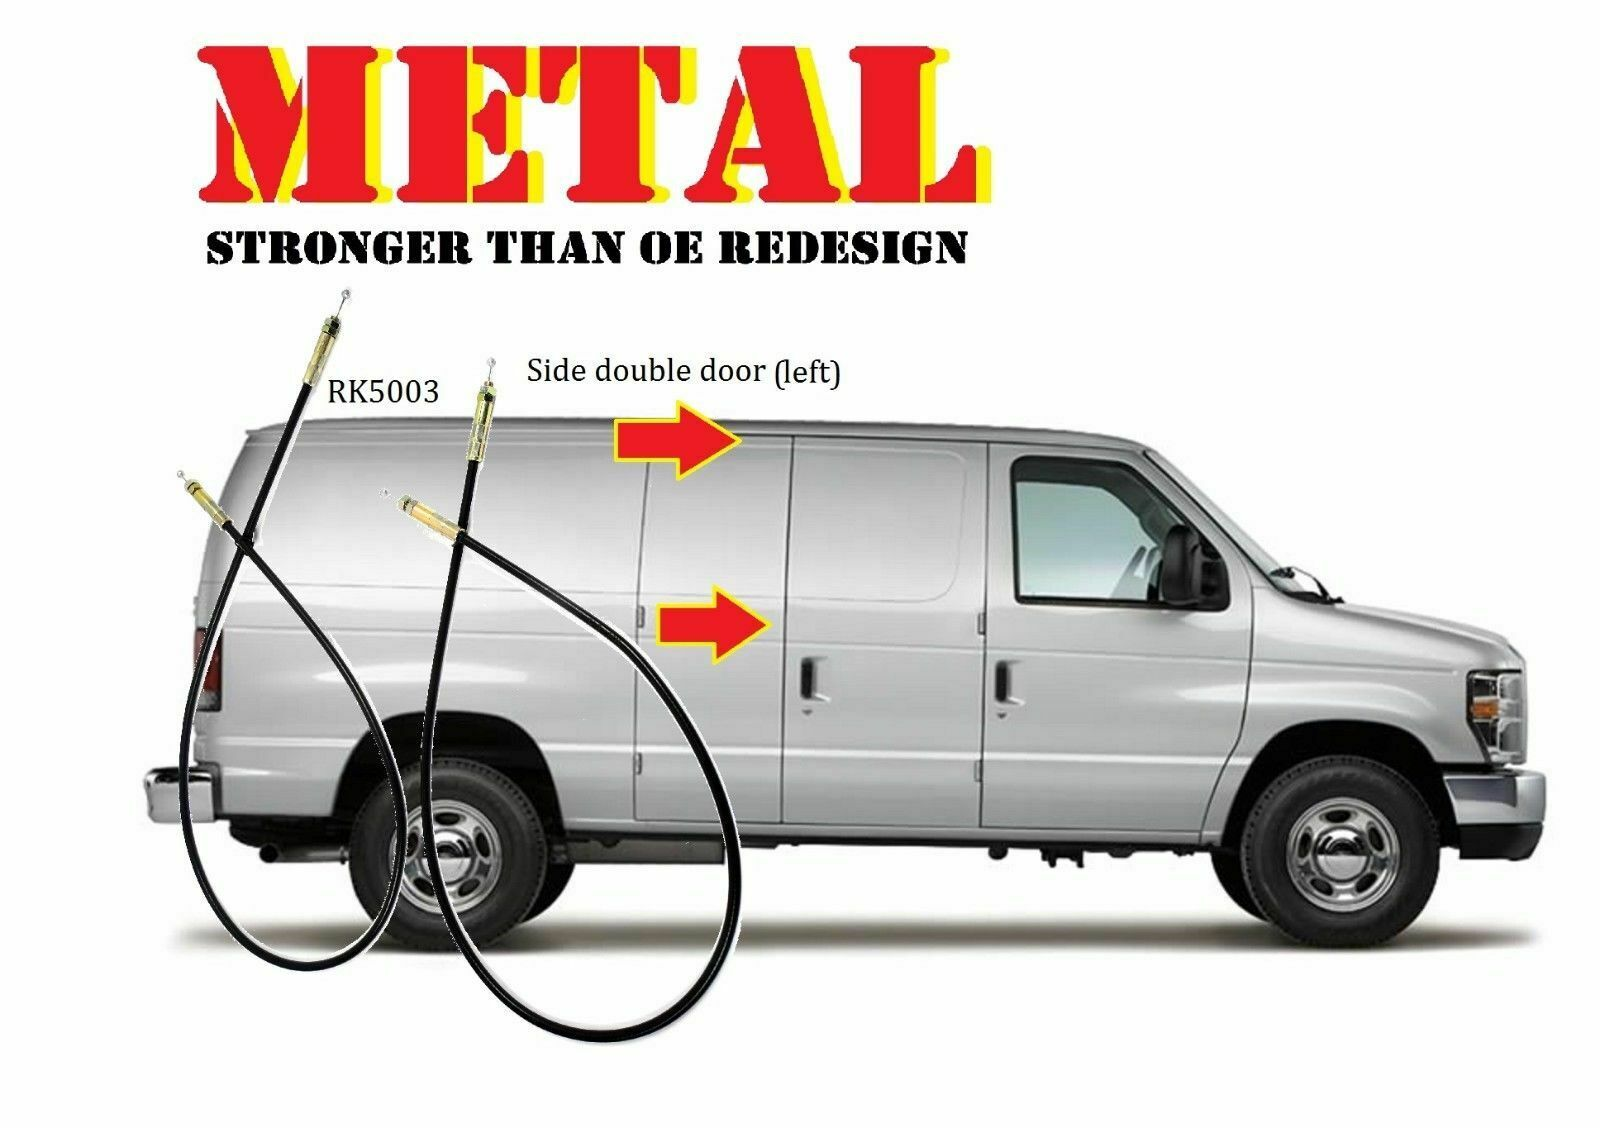 For Metal Econoline Van Handle Side Cargo Latch Release Actuator 2 E550 Ford E 150 Wiring Diagram Manuals 1 Of 5only 4 Available